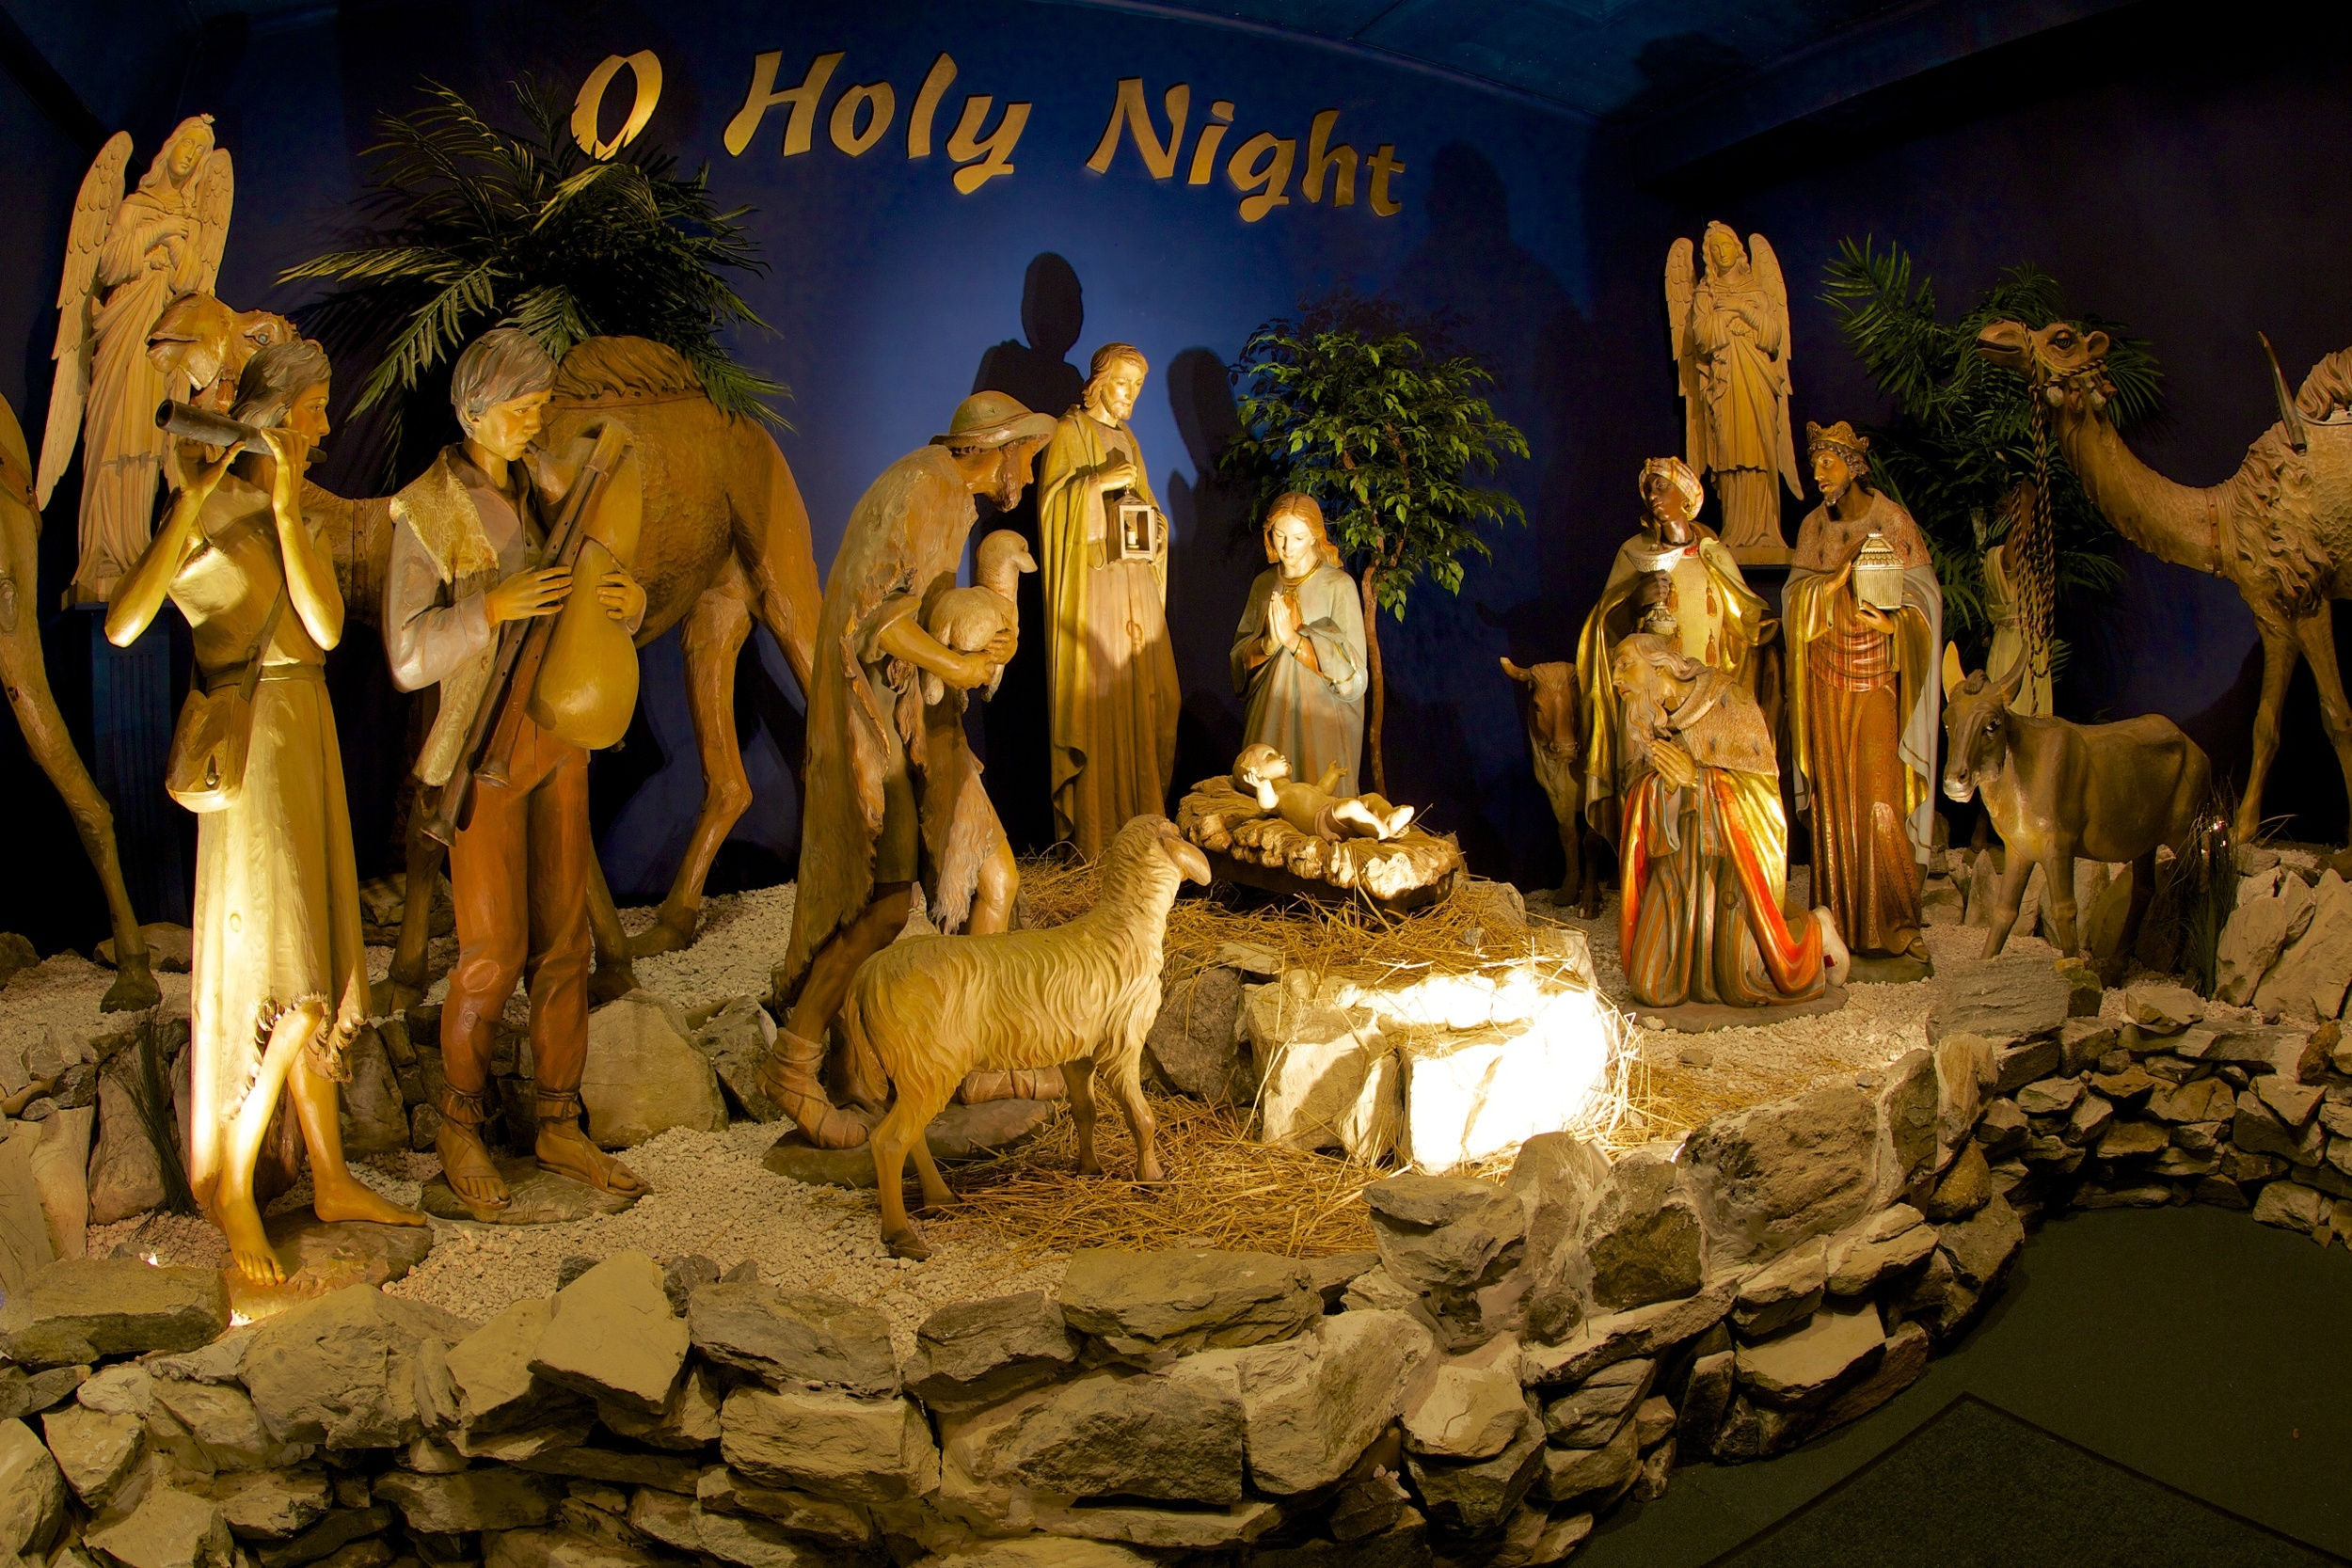 Figure 11: This 3/4 life-sized, wood-carved Nativity at the National Christmas Center was once owned by the Marshall Field's department store in Chicago, where it was displayed at the beginning of the 20th century.